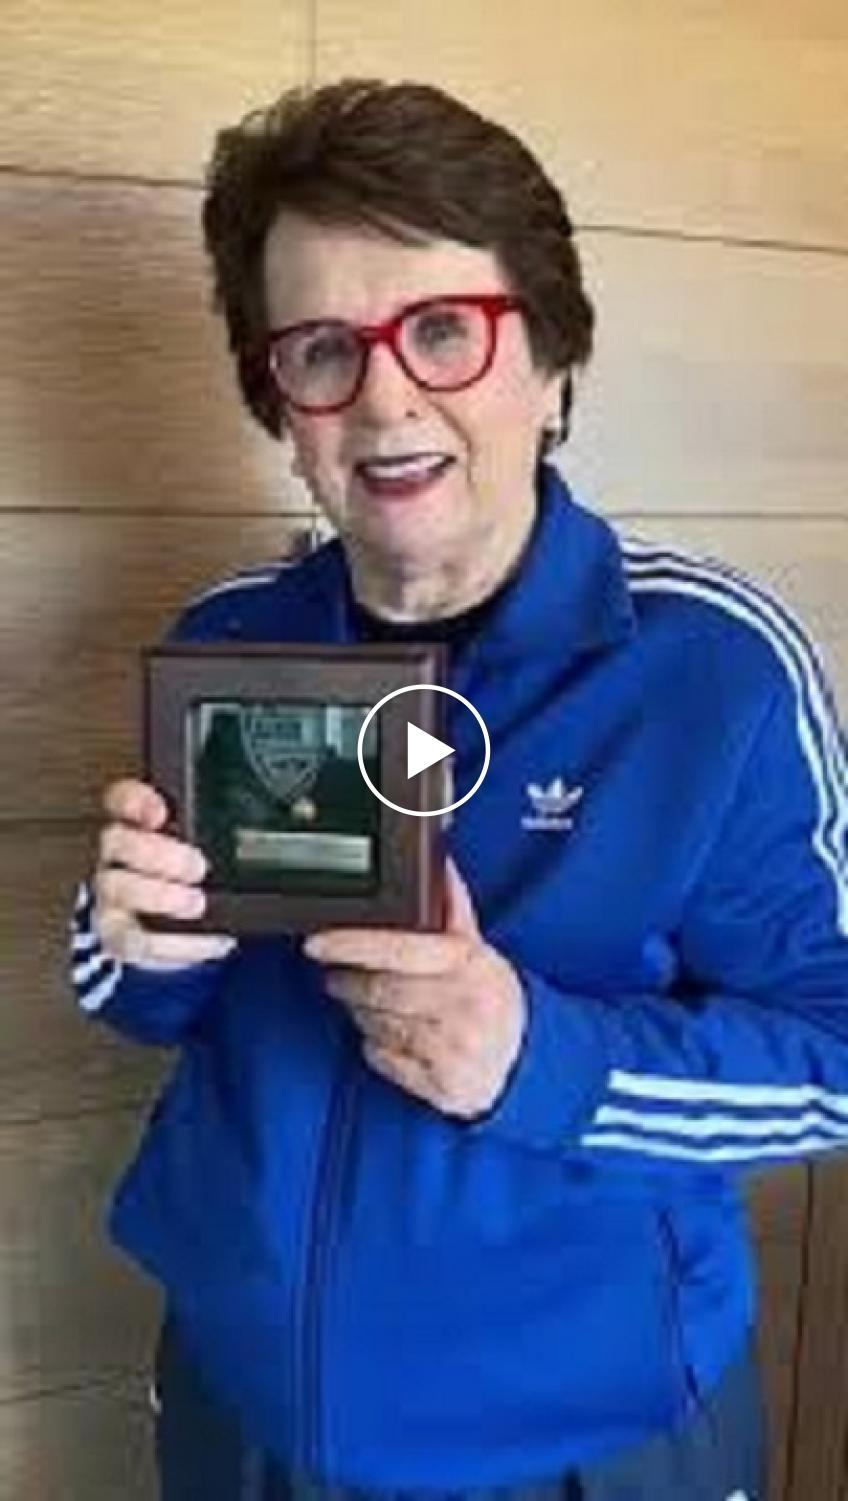 Billie Jean King shares Andy Roddick's special gift to her after the 2007 Davis Cup